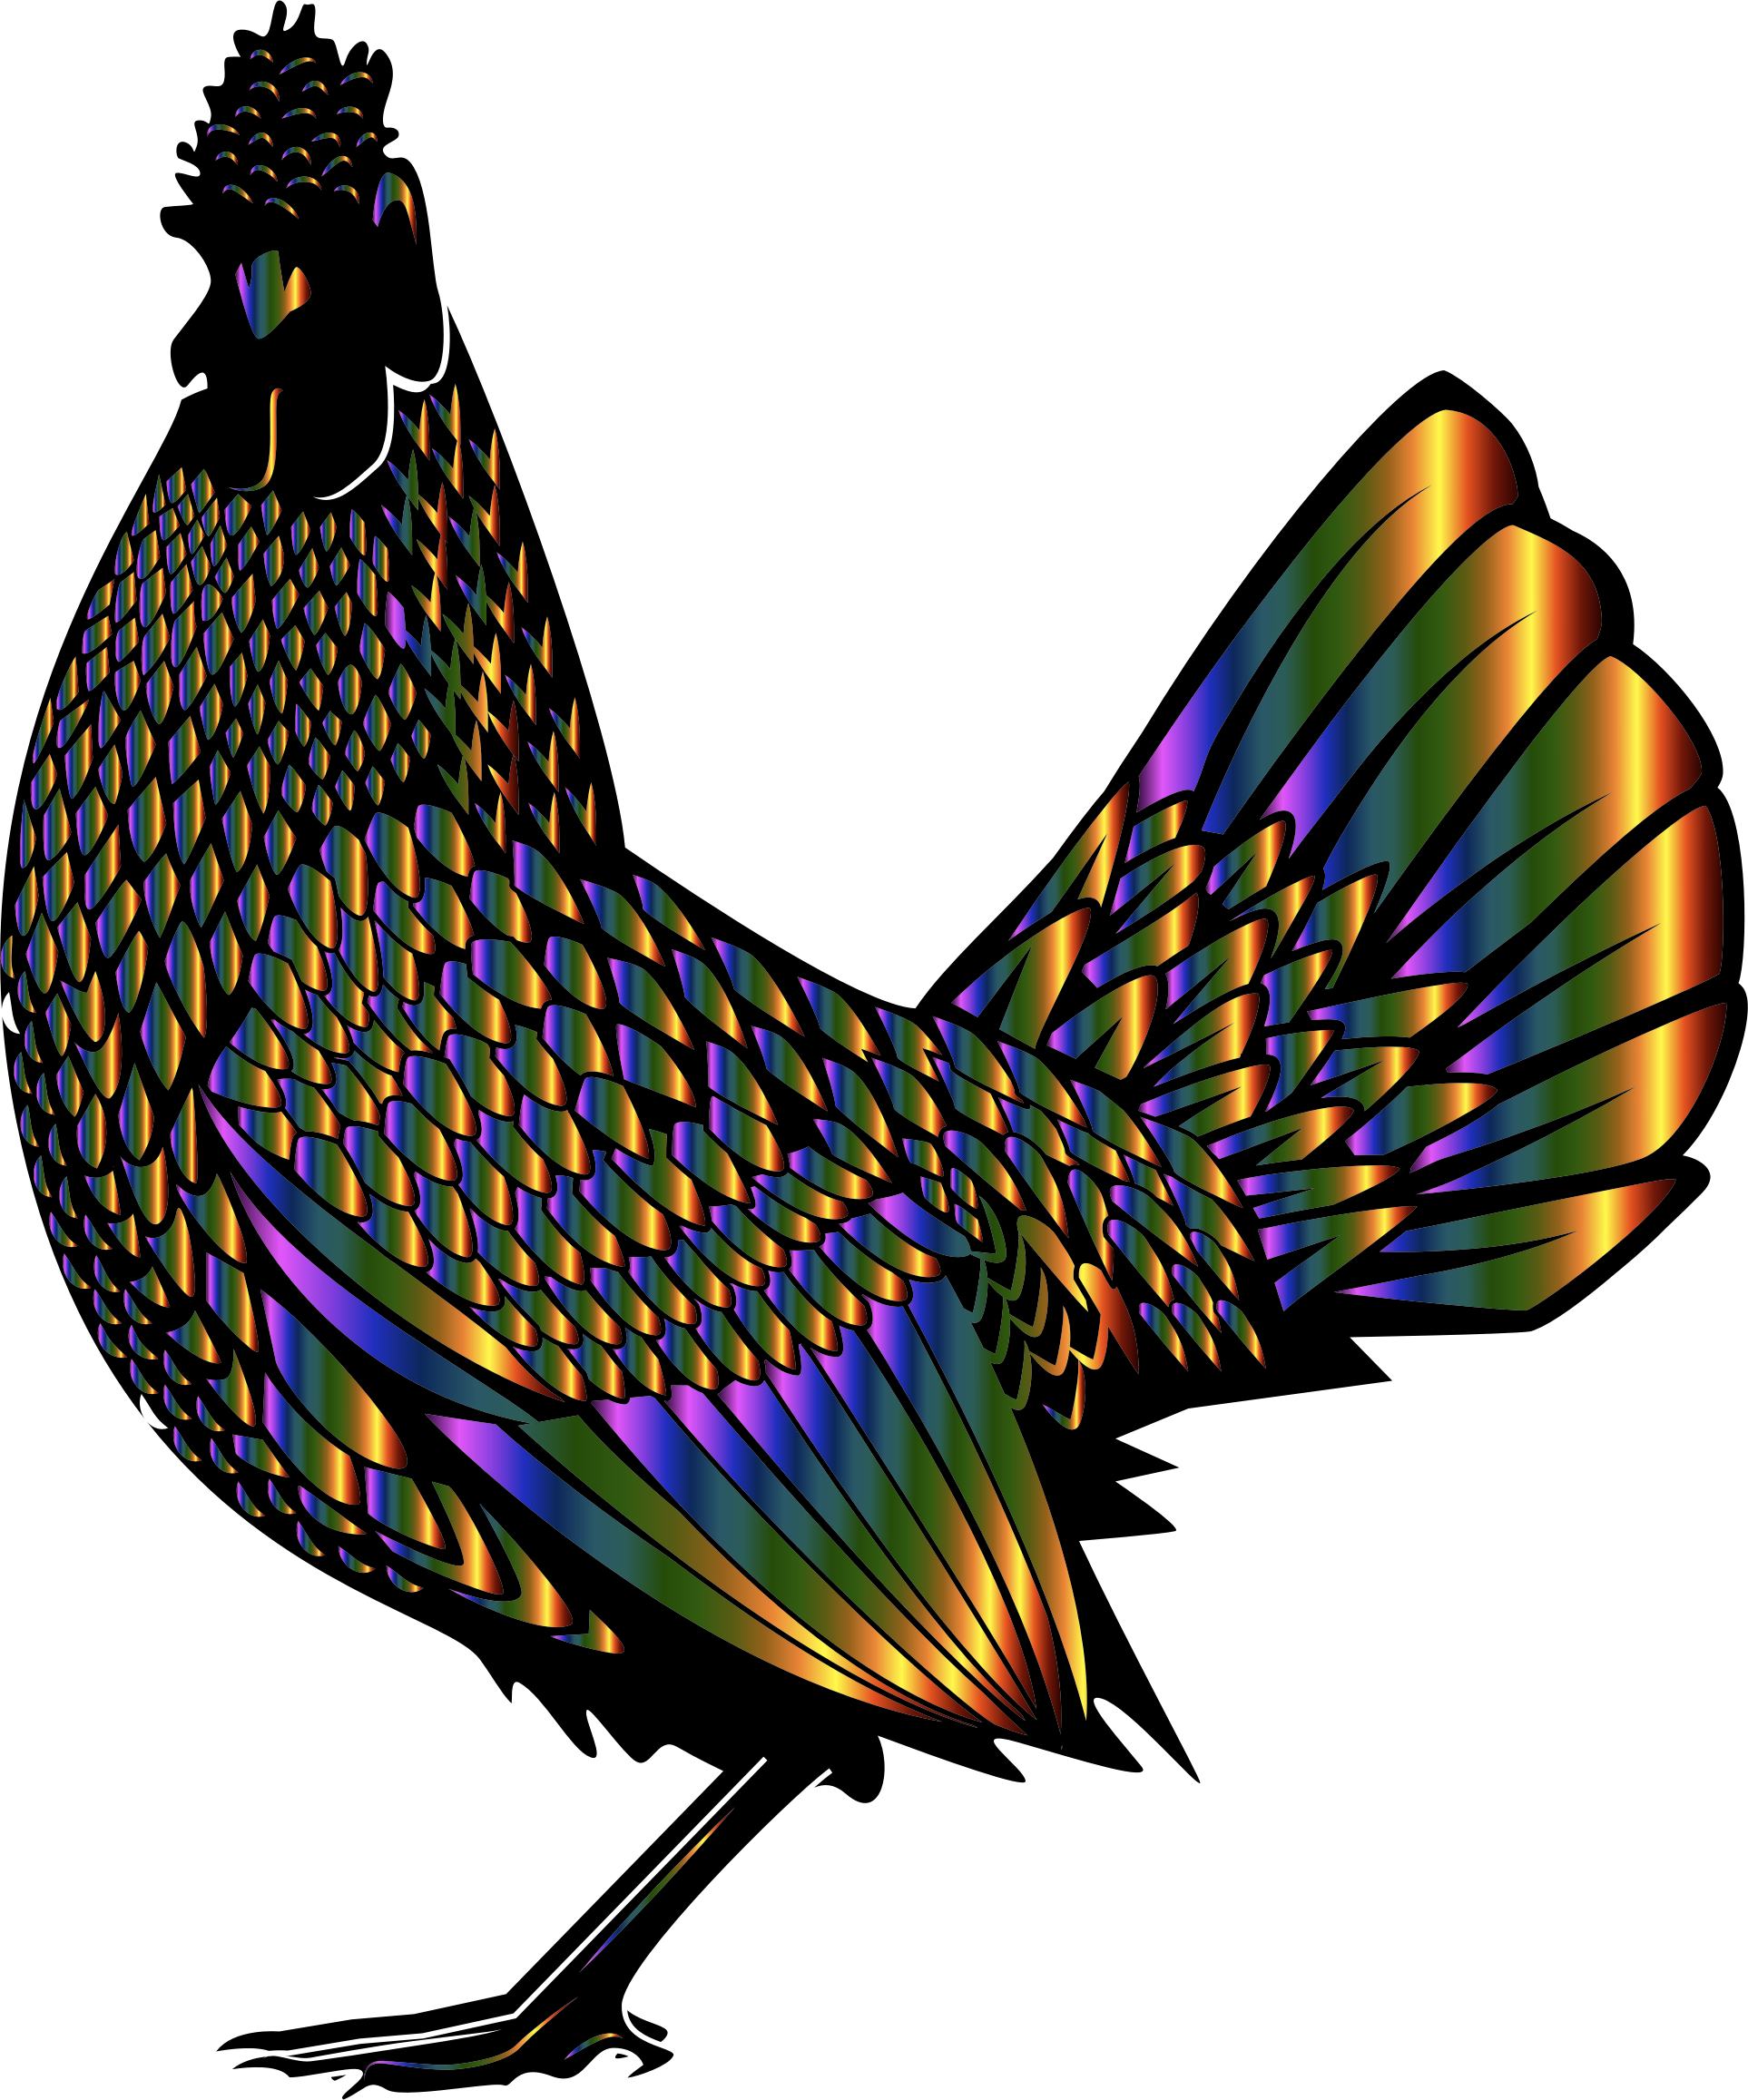 Chromatic Rooster by GDJ